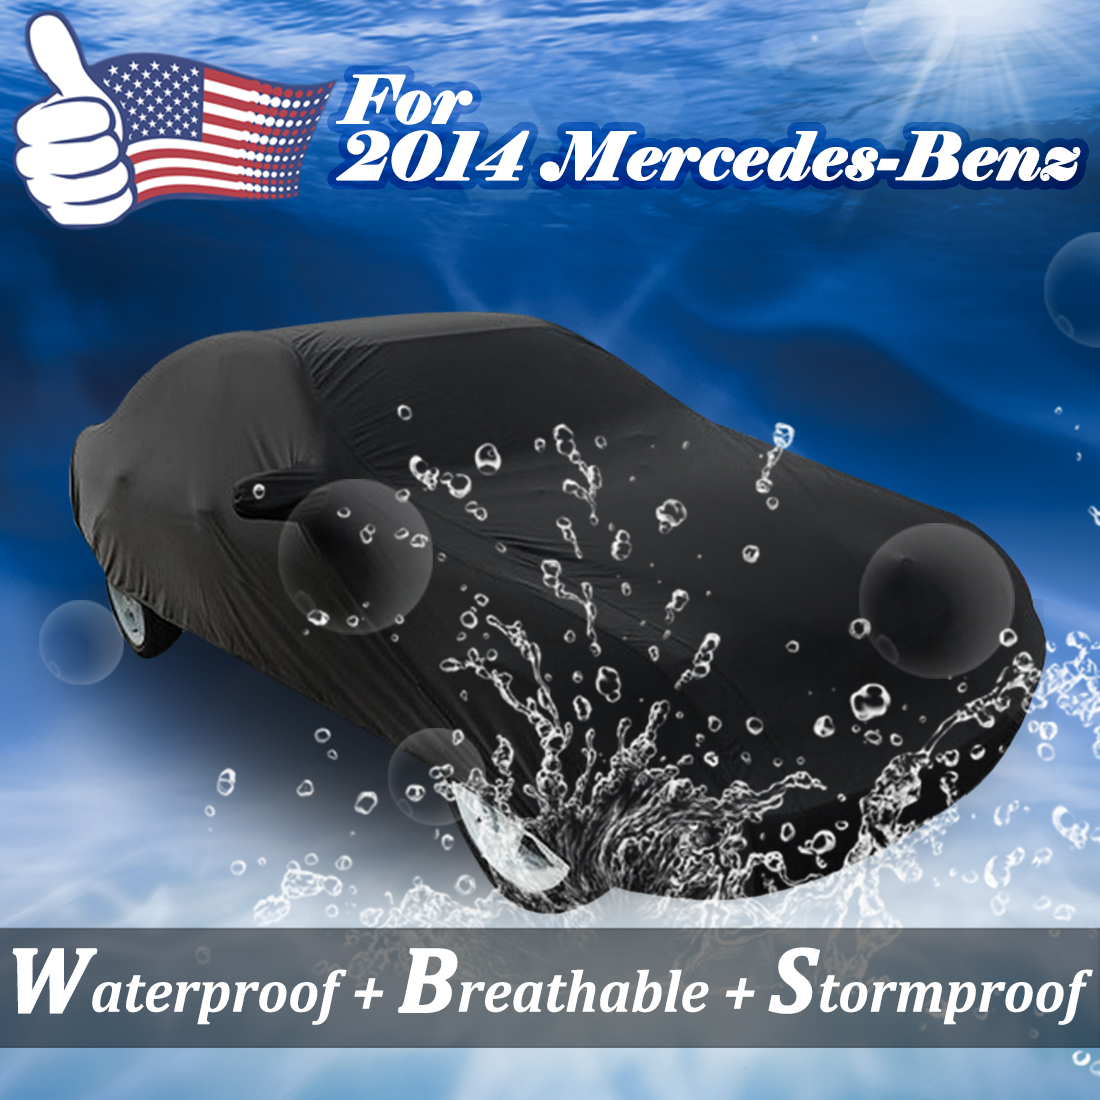 Car cover for 2014 mercedes benz stormproof waterproof for Mercedes benz car covers